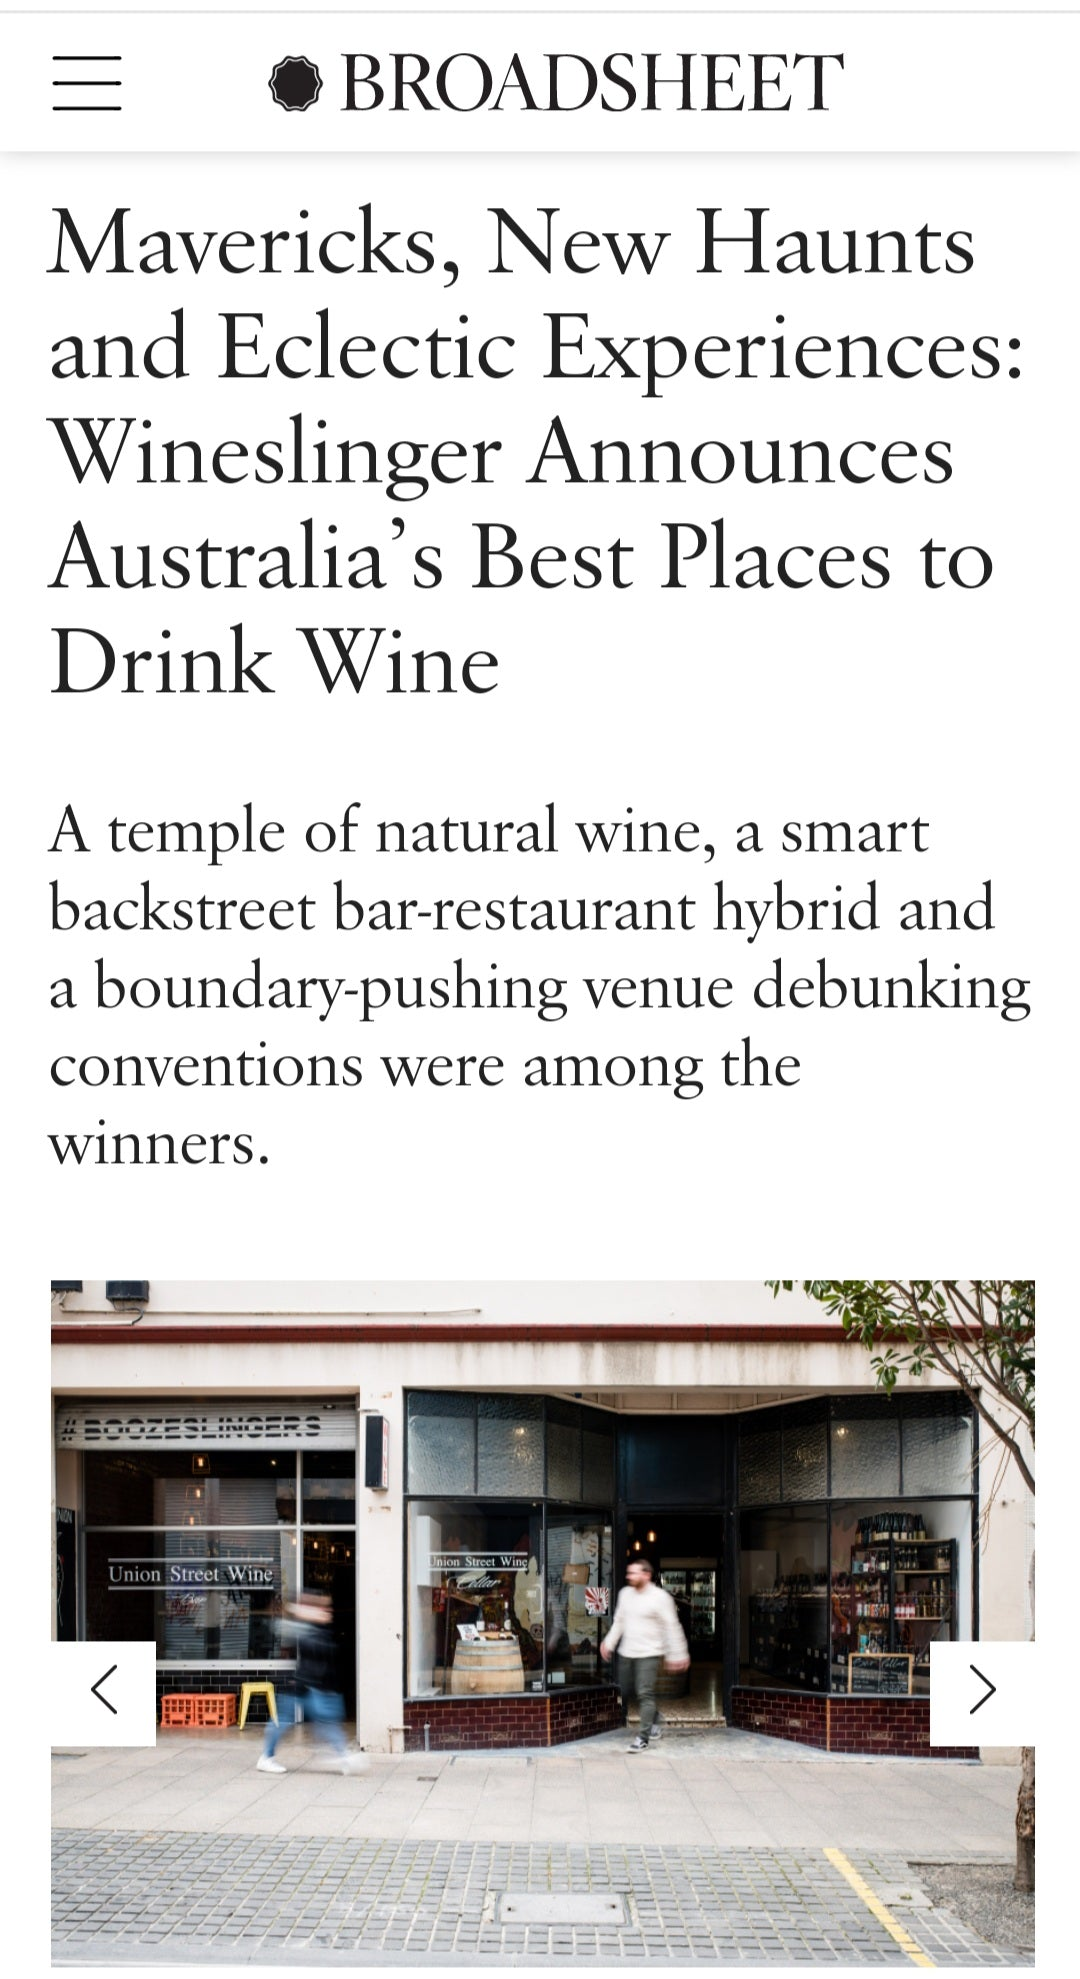 Mavericks, New Haunts and Eclectic Experiences: Wineslinger Announces Australia's Best Places to Drink Wine